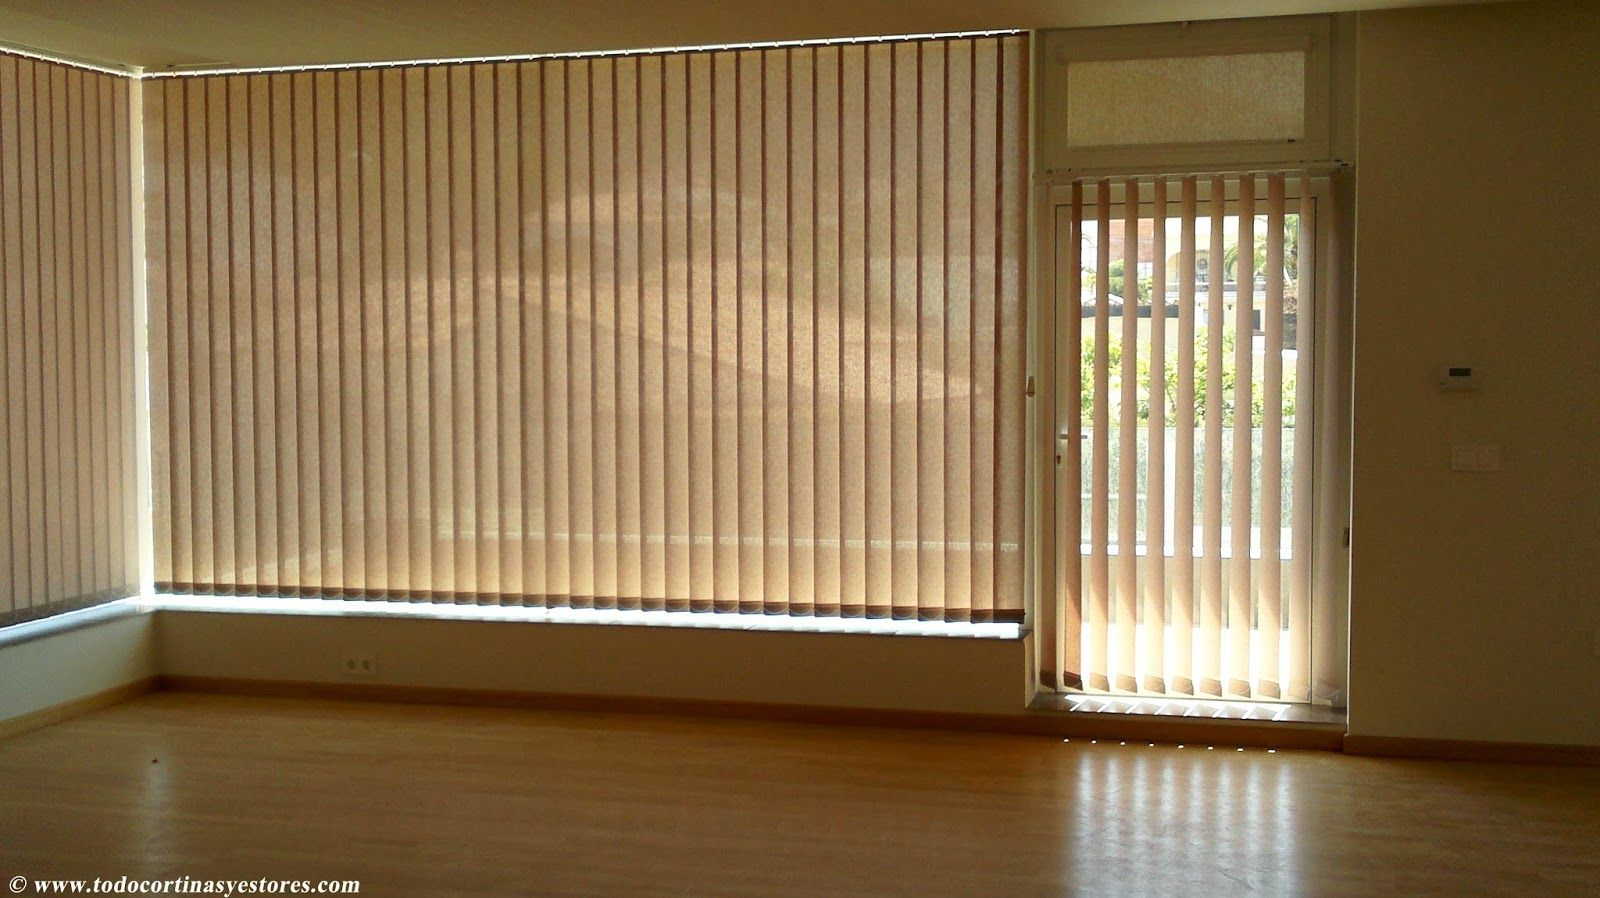 Decoracion interior cortinas verticales estores enrollables puertas plegables toldos - Estores persianas ...